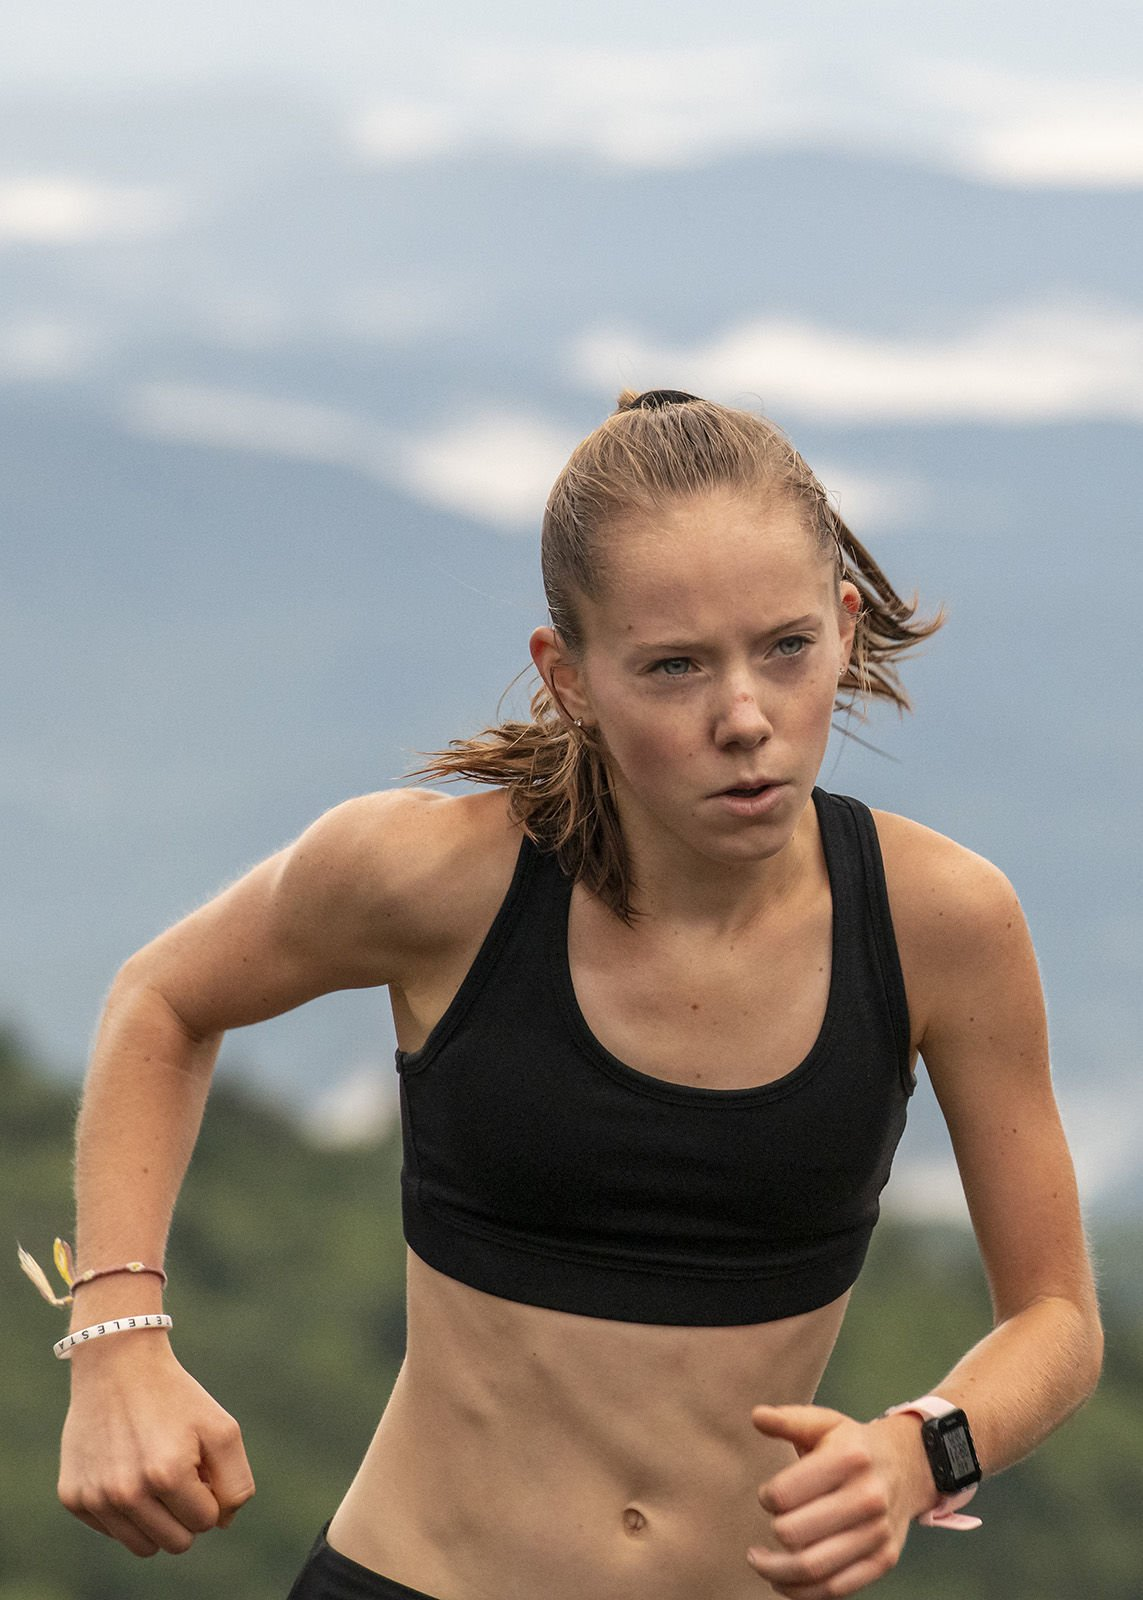 In her first time on the course, Joanna Thompson, 26, of Knoxville, Tenn., and ZAP Fitness in Blowing Rock, was The Bear's first women's finisher with a time of 36:13.1.